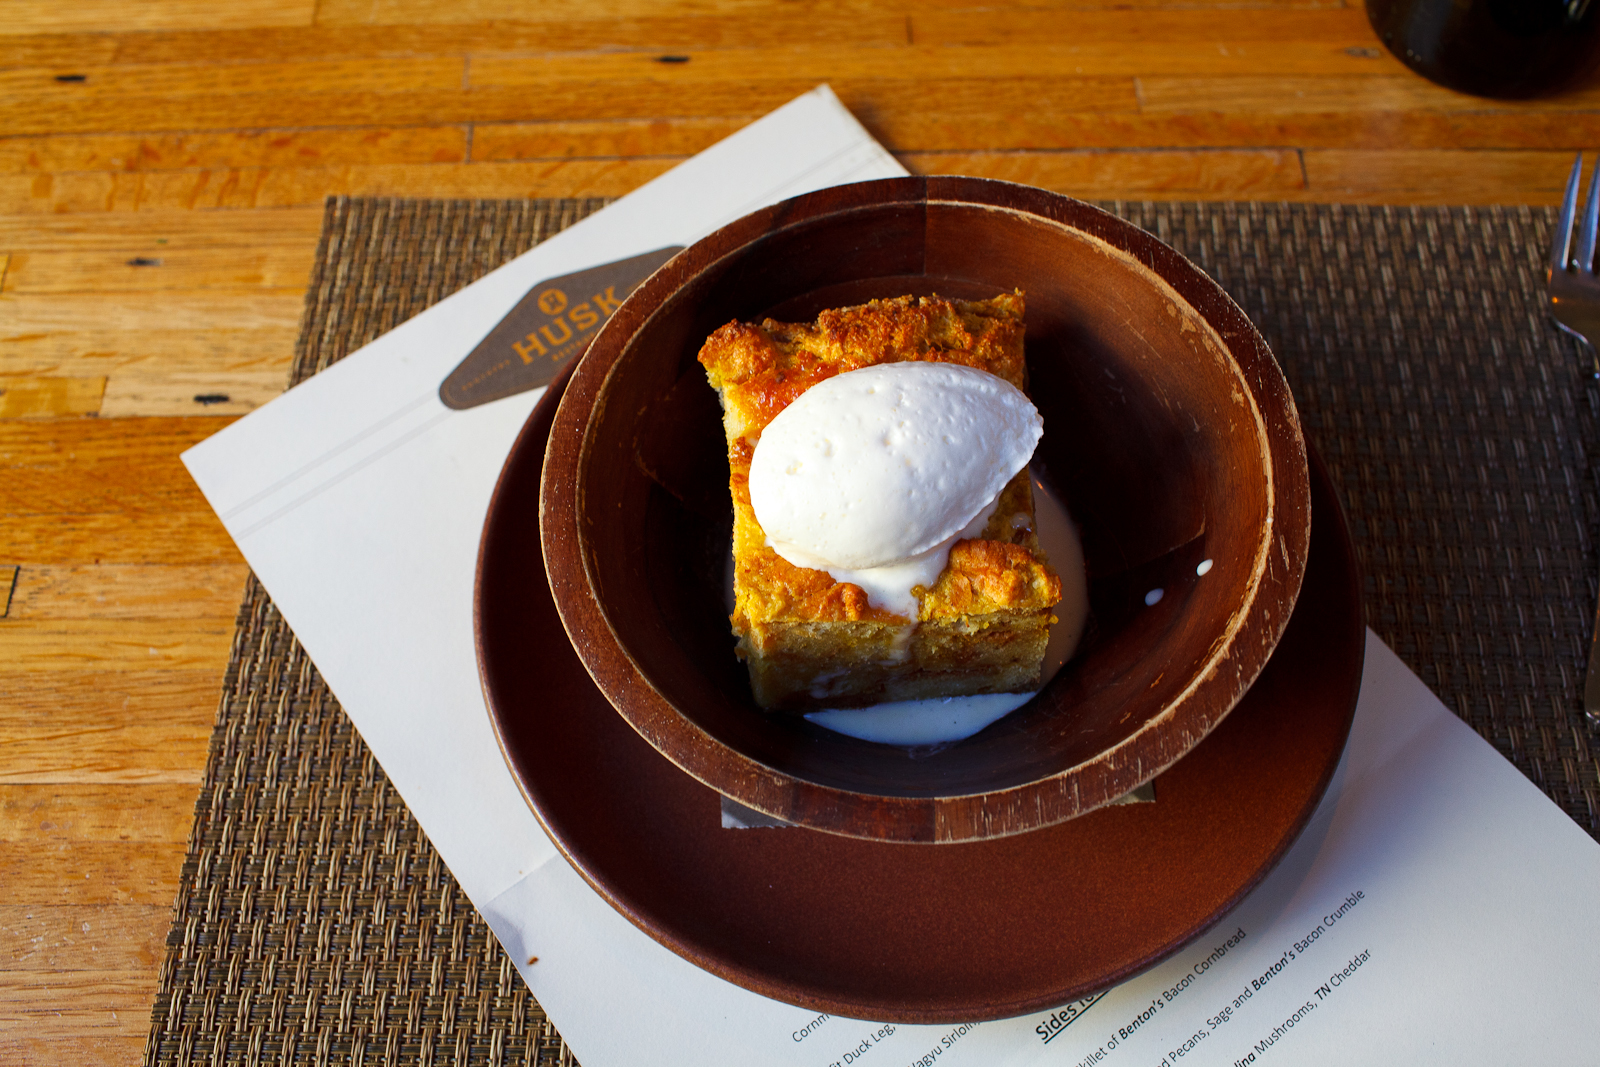 Heirloom pumpkin bread pudding, ginger anglaise ($7)